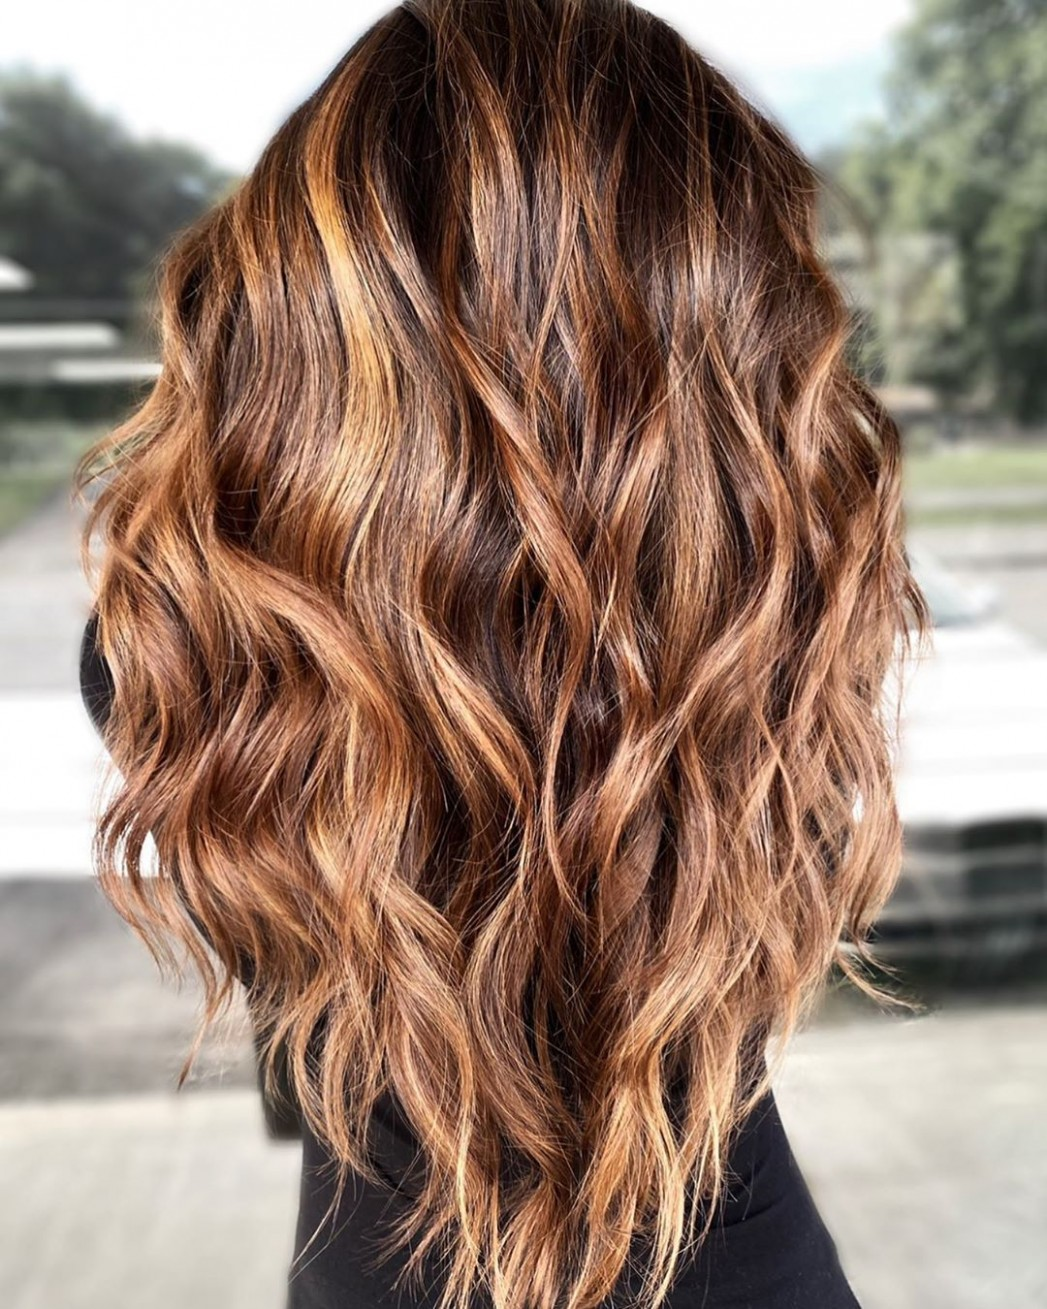 10 Cute Layered Hairstyles And Cuts For Long Hair In 10 Different Haircuts For Long Hair